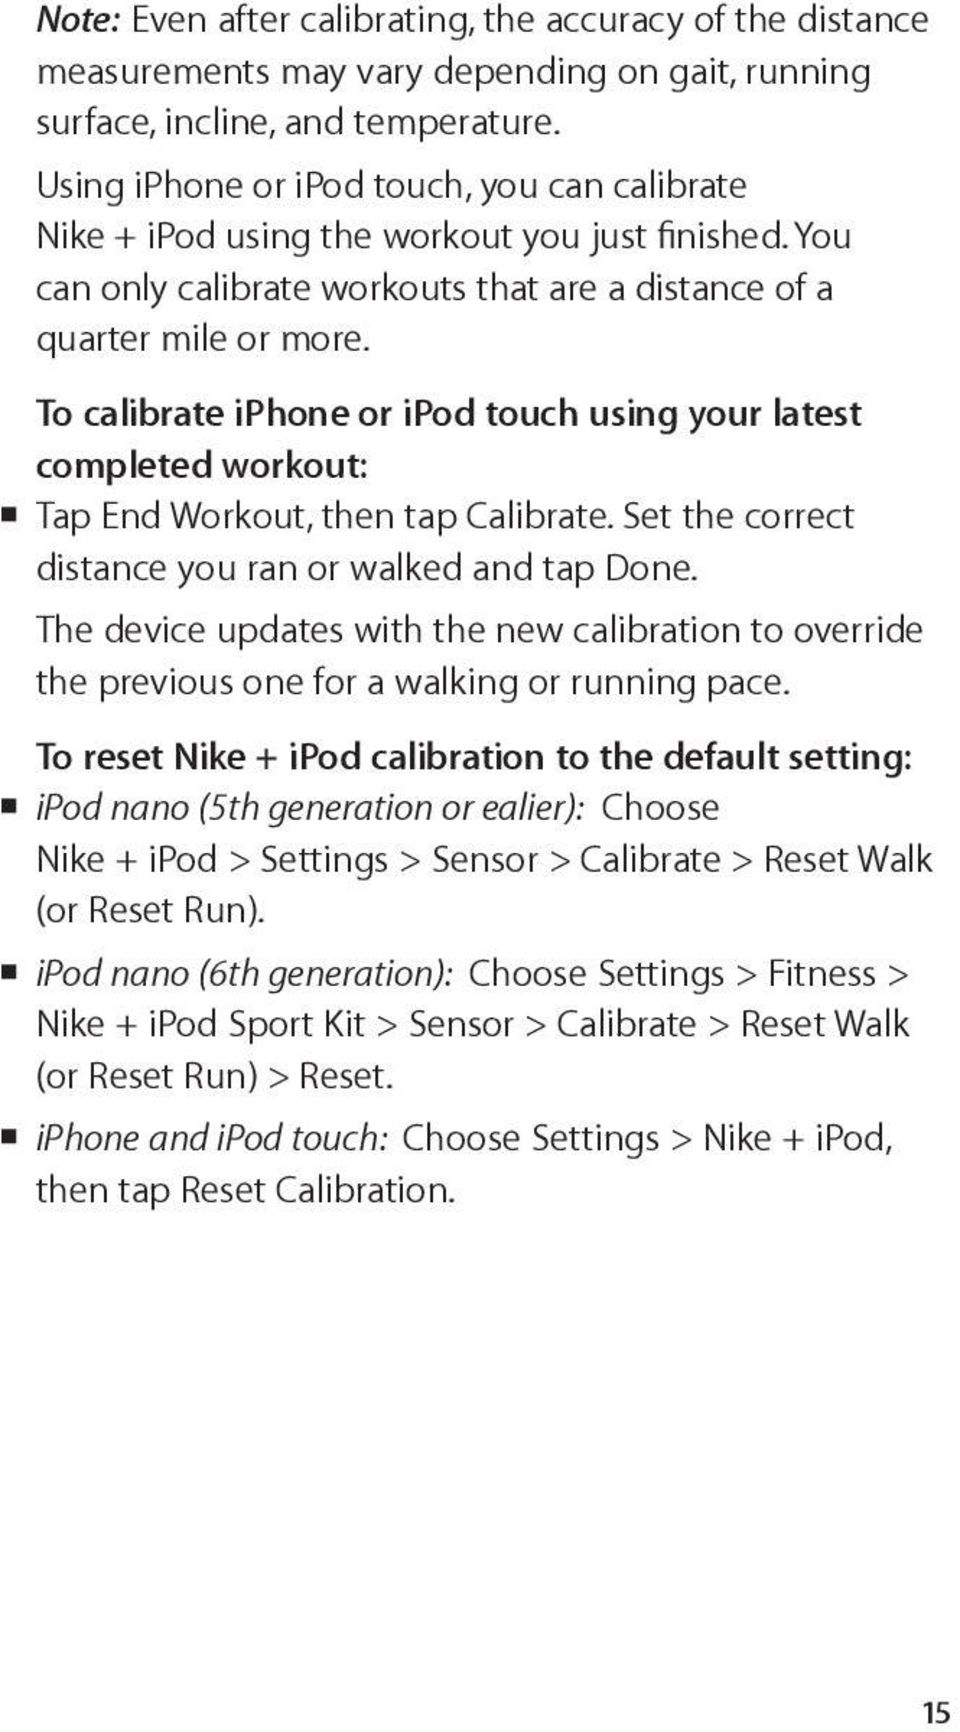 To calibrate iphone or ipod touch using your latest completed workout: Tap End Workout, then tap Calibrate. Set the correct distance you ran or walked and tap Done.